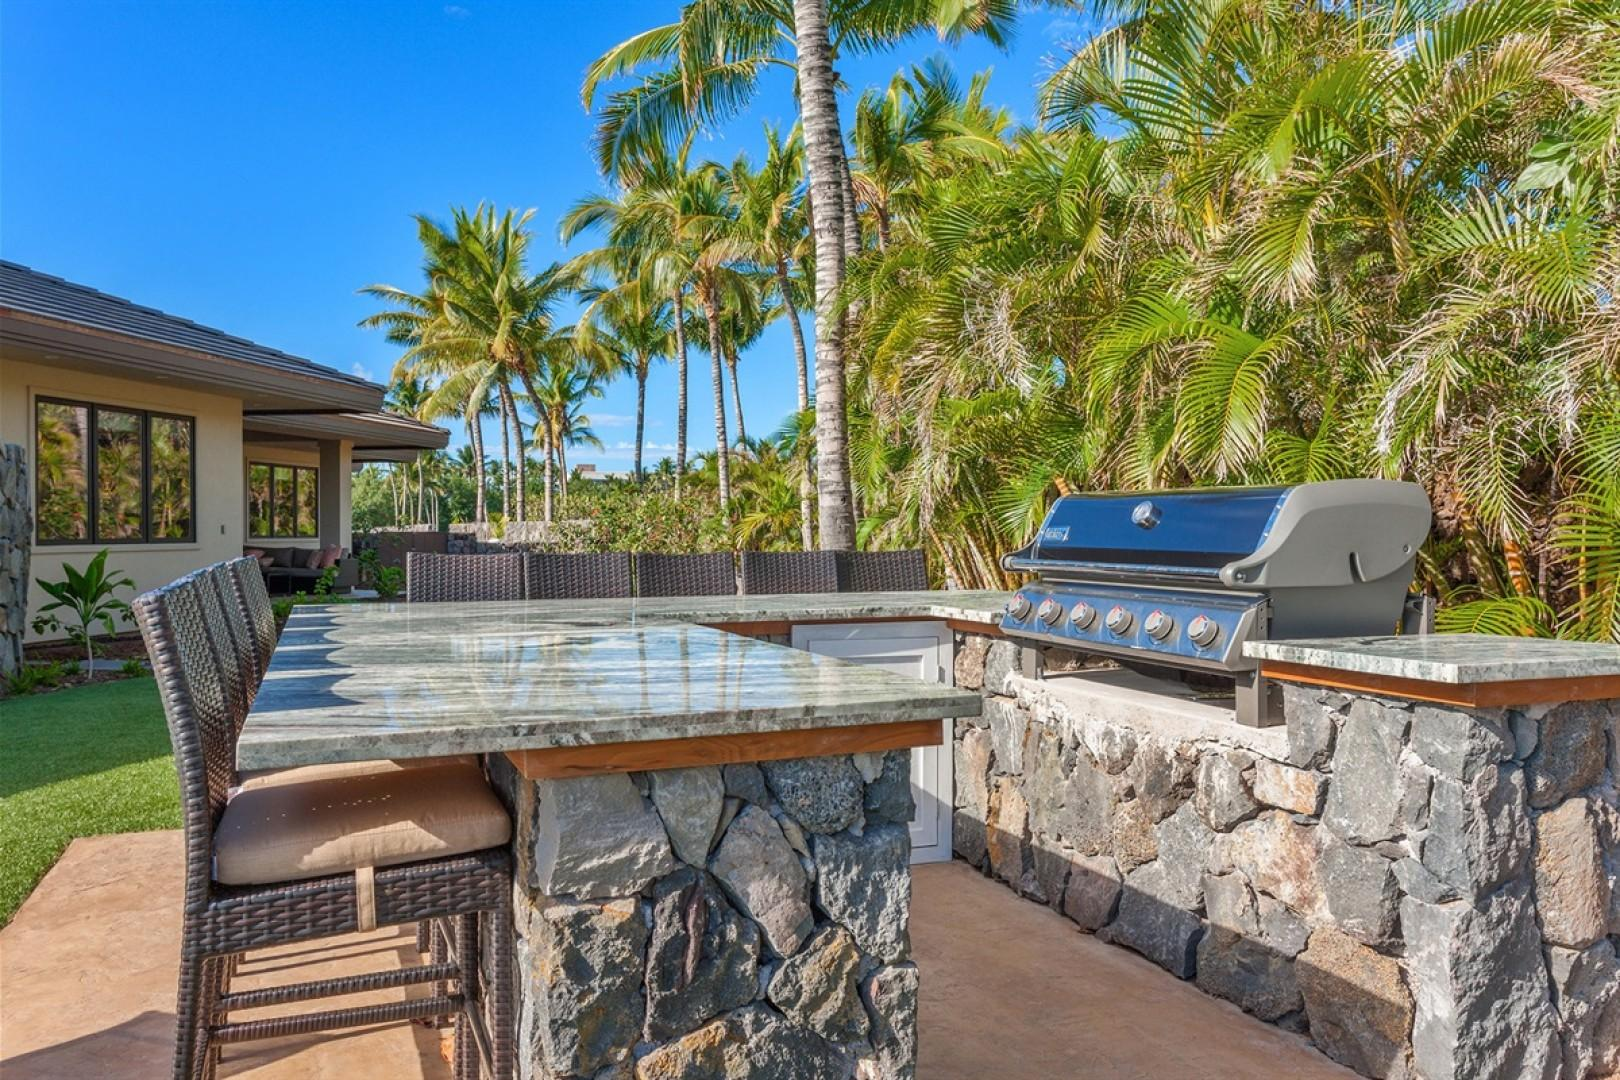 Outdoor built-in 6-burner Coyote BBQ Grill with ample counter area and bar seating.